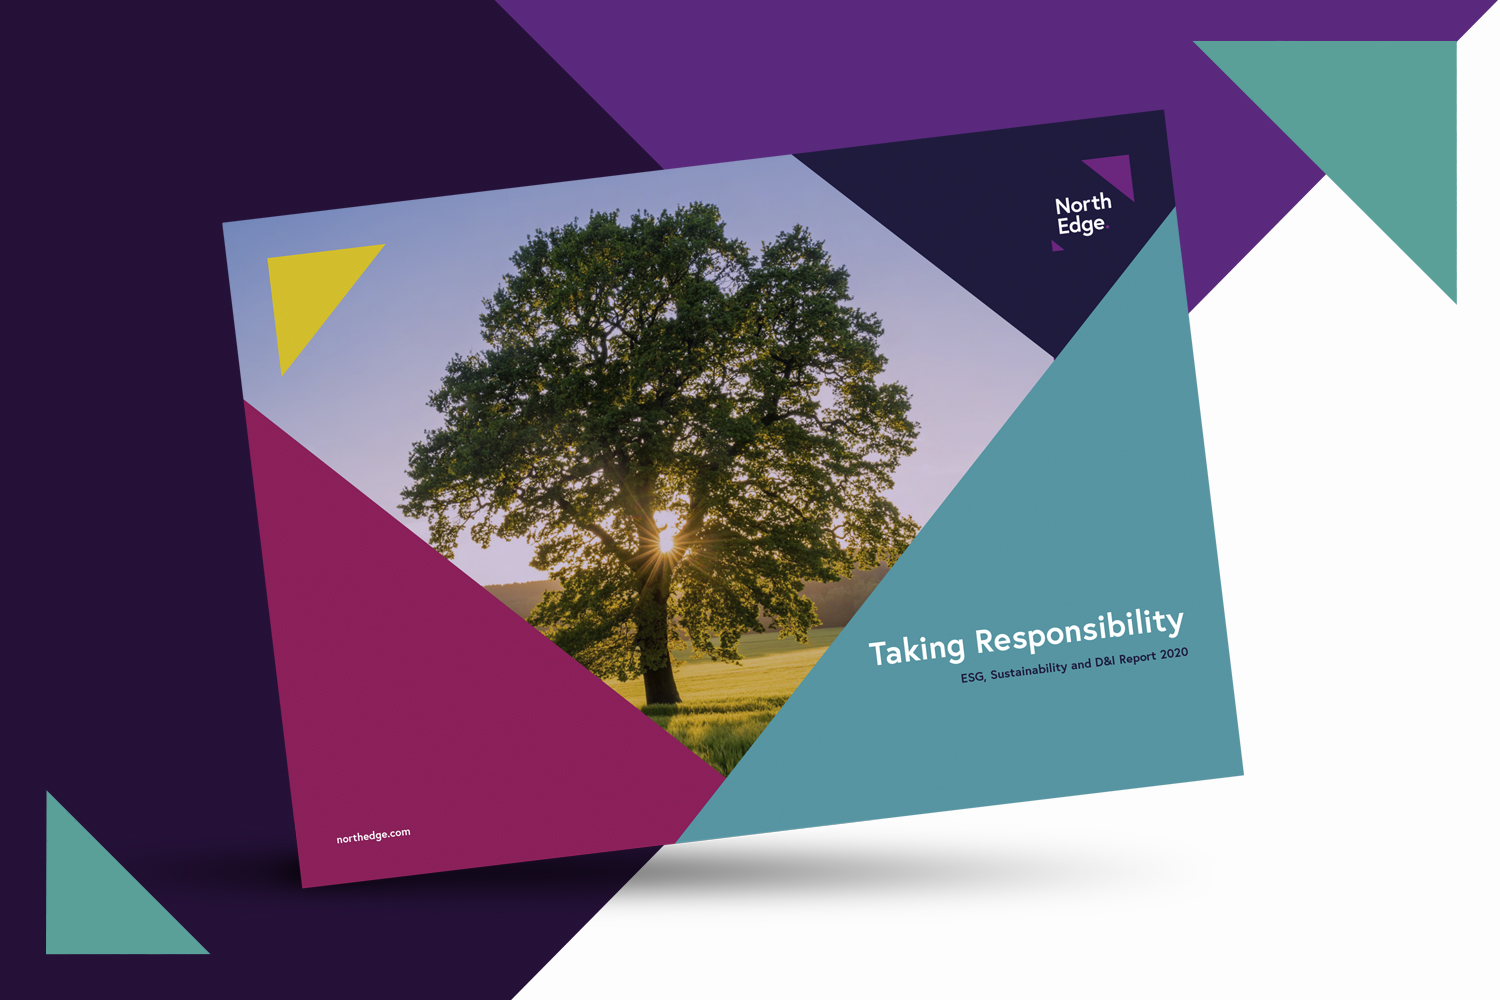 NorthEdge launches 'Taking Responsibility', its first ESG report